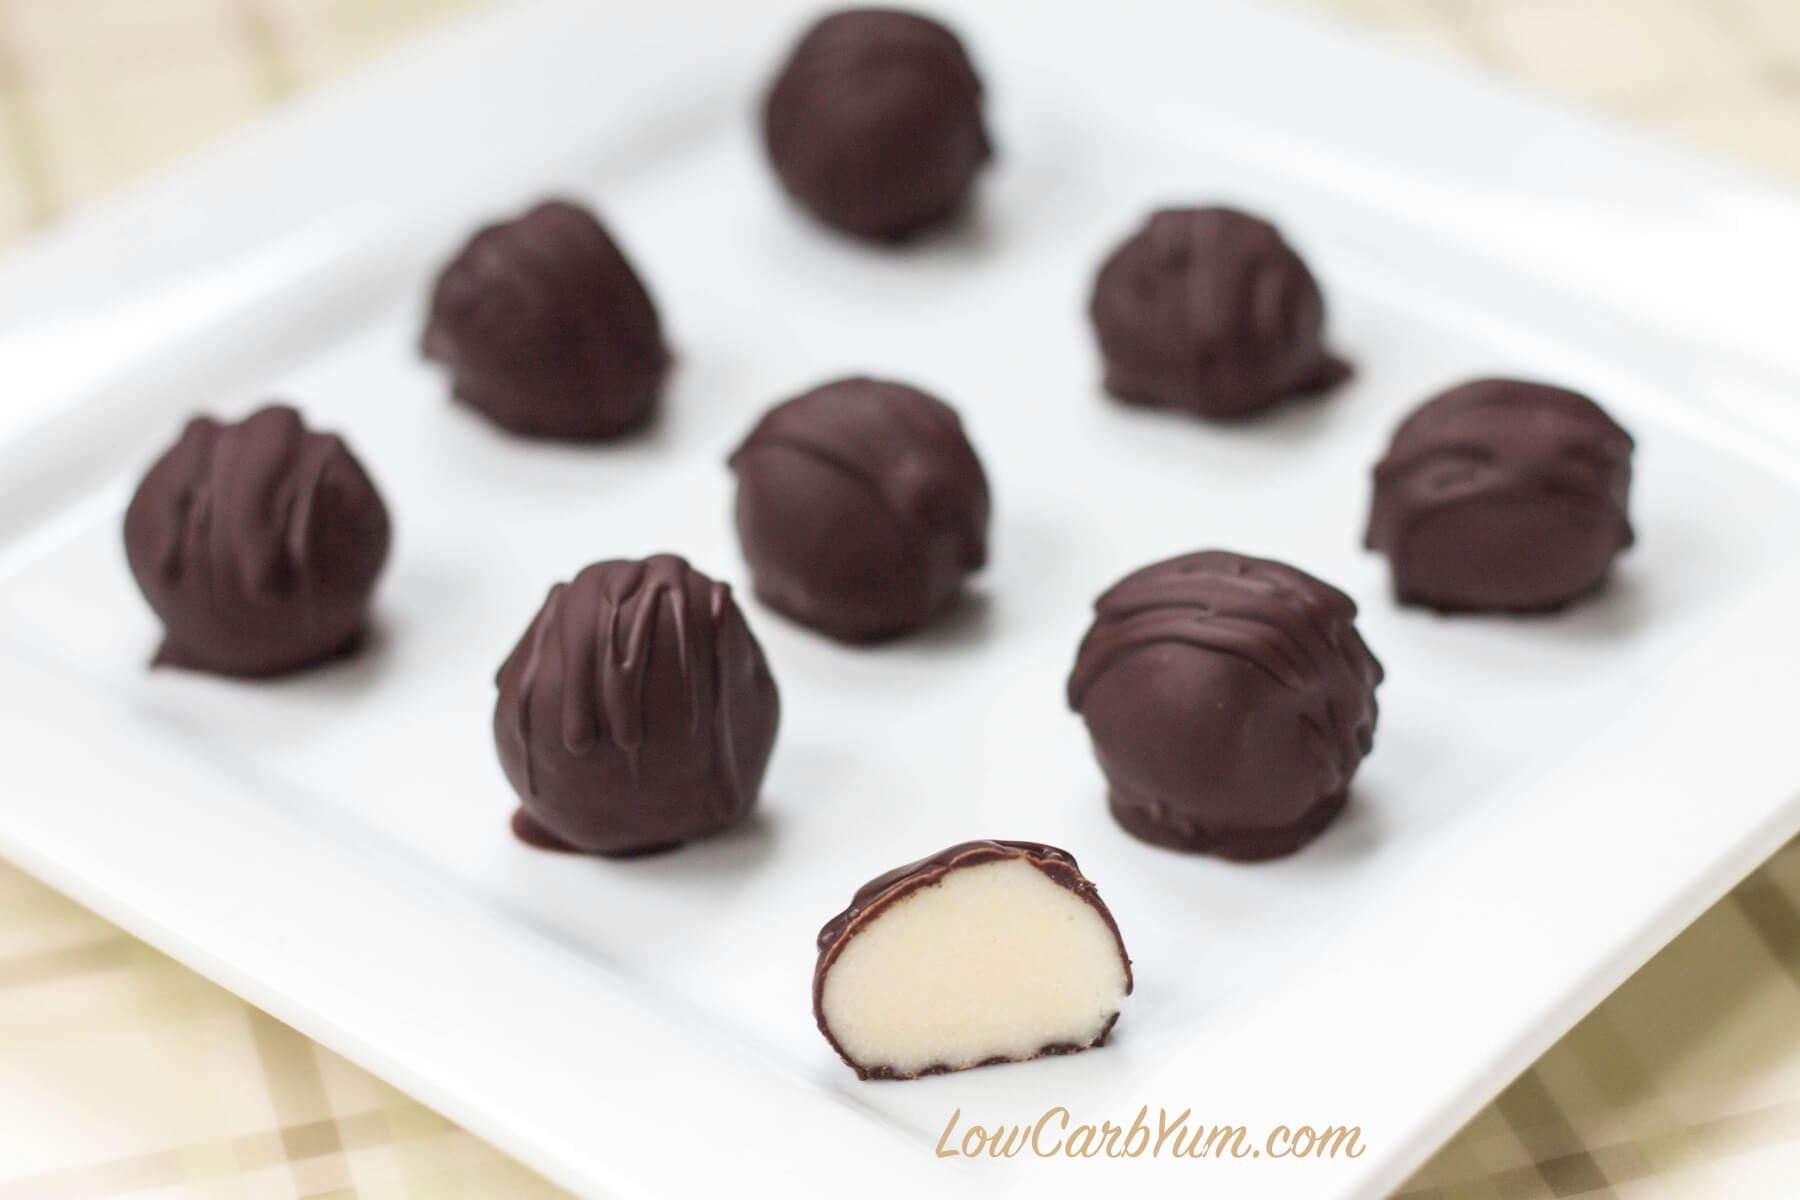 low-carb-white-chocolate-truffles-recipe